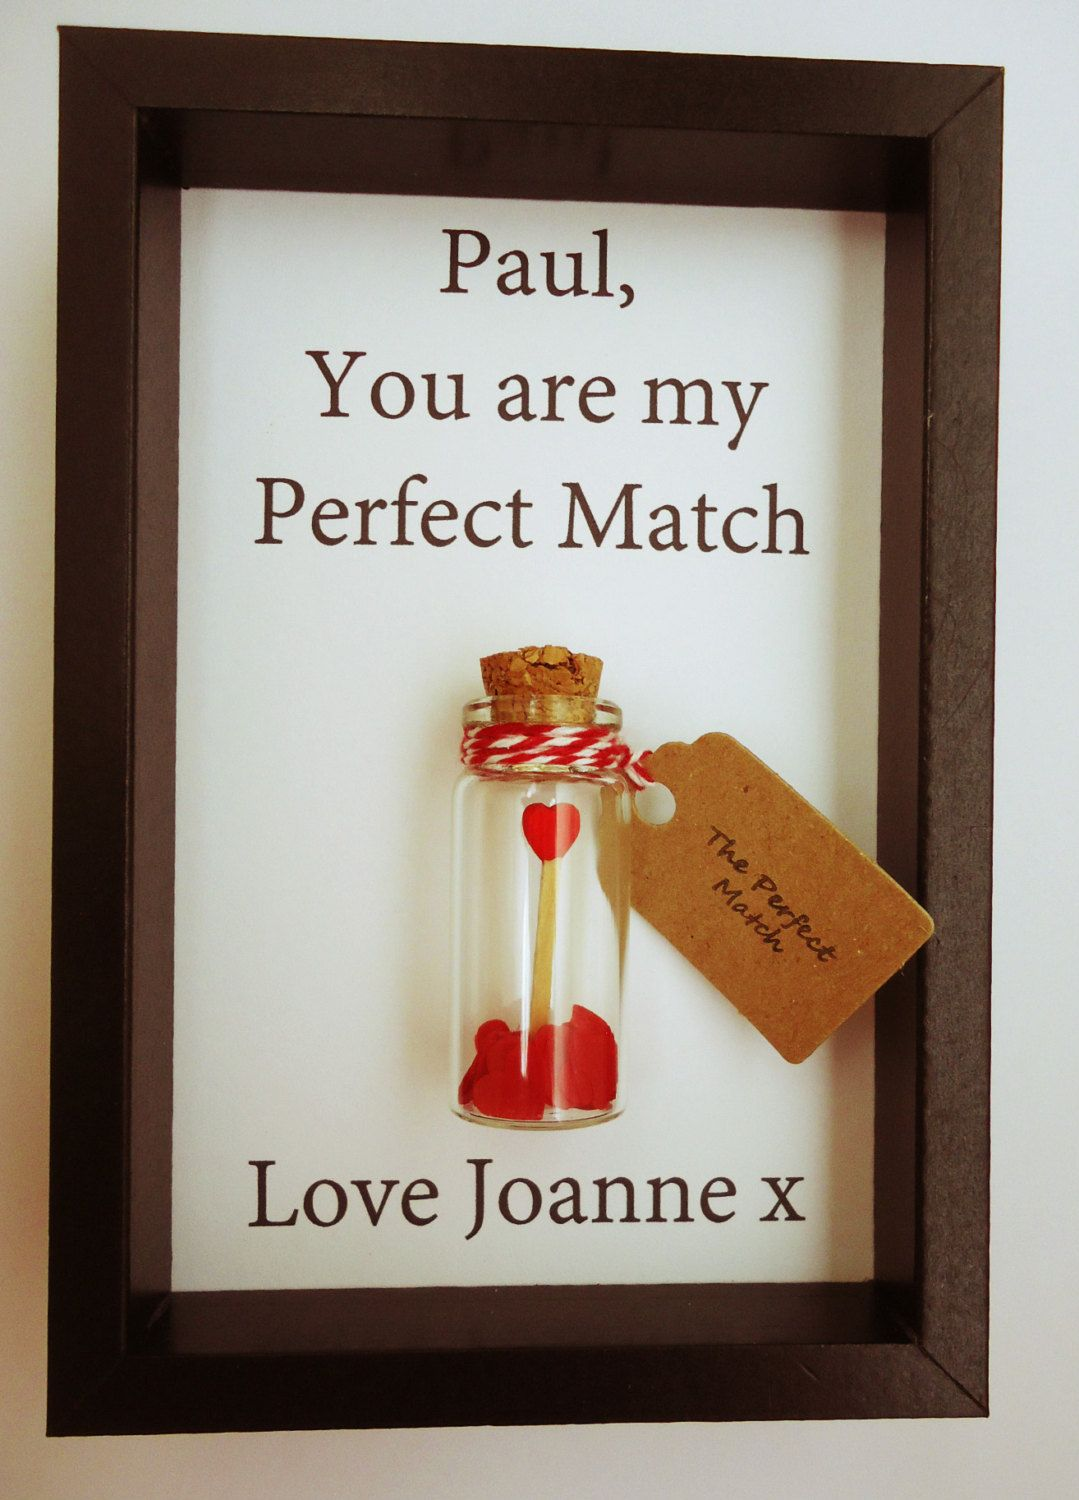 My perfect match, Cool boyfriend gift, Personalised